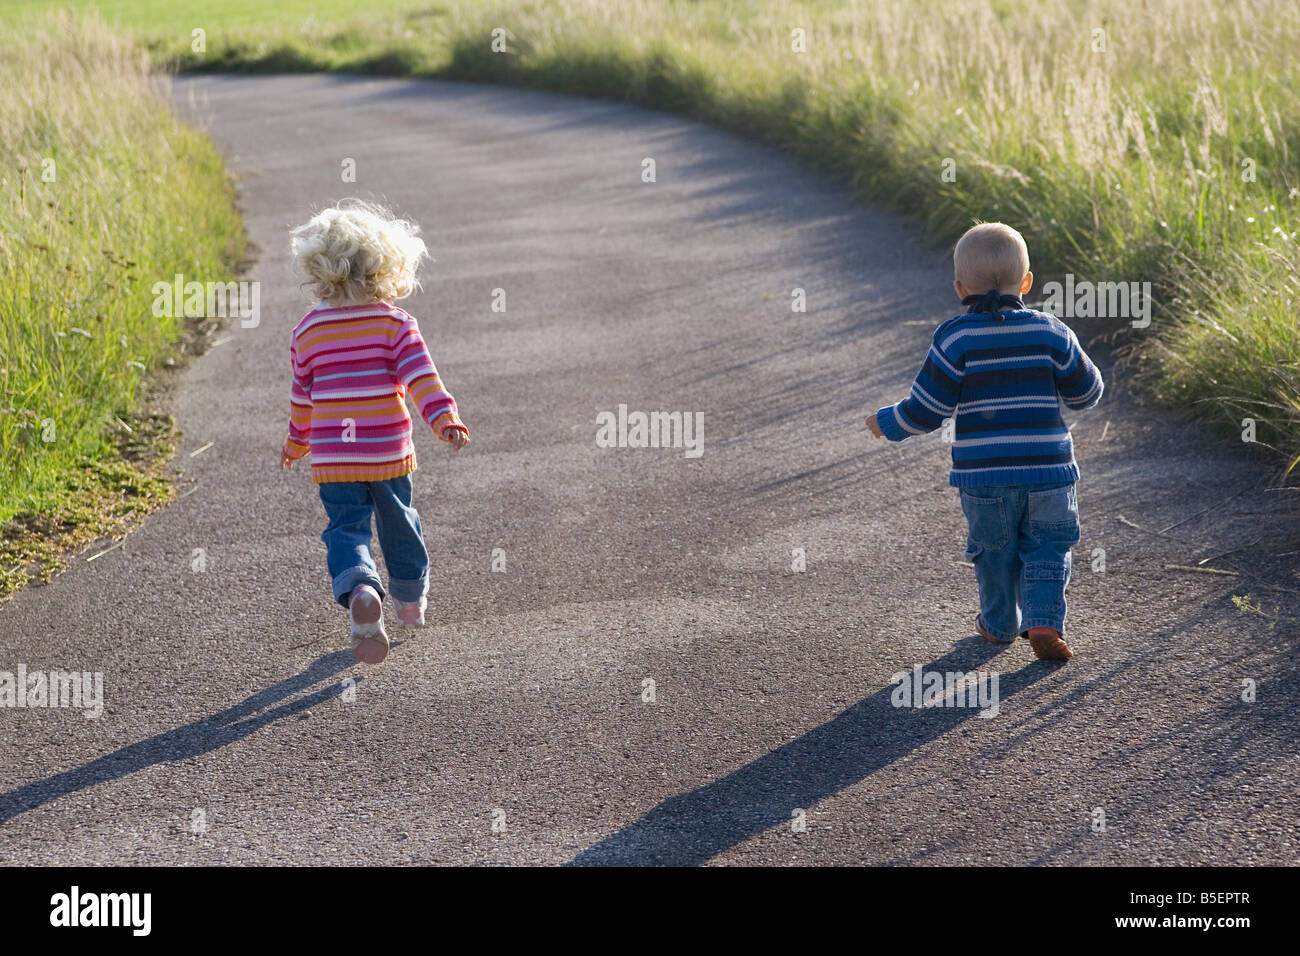 Little girl (2-3) and boy (1-2) running across path, rear view Stock Photo